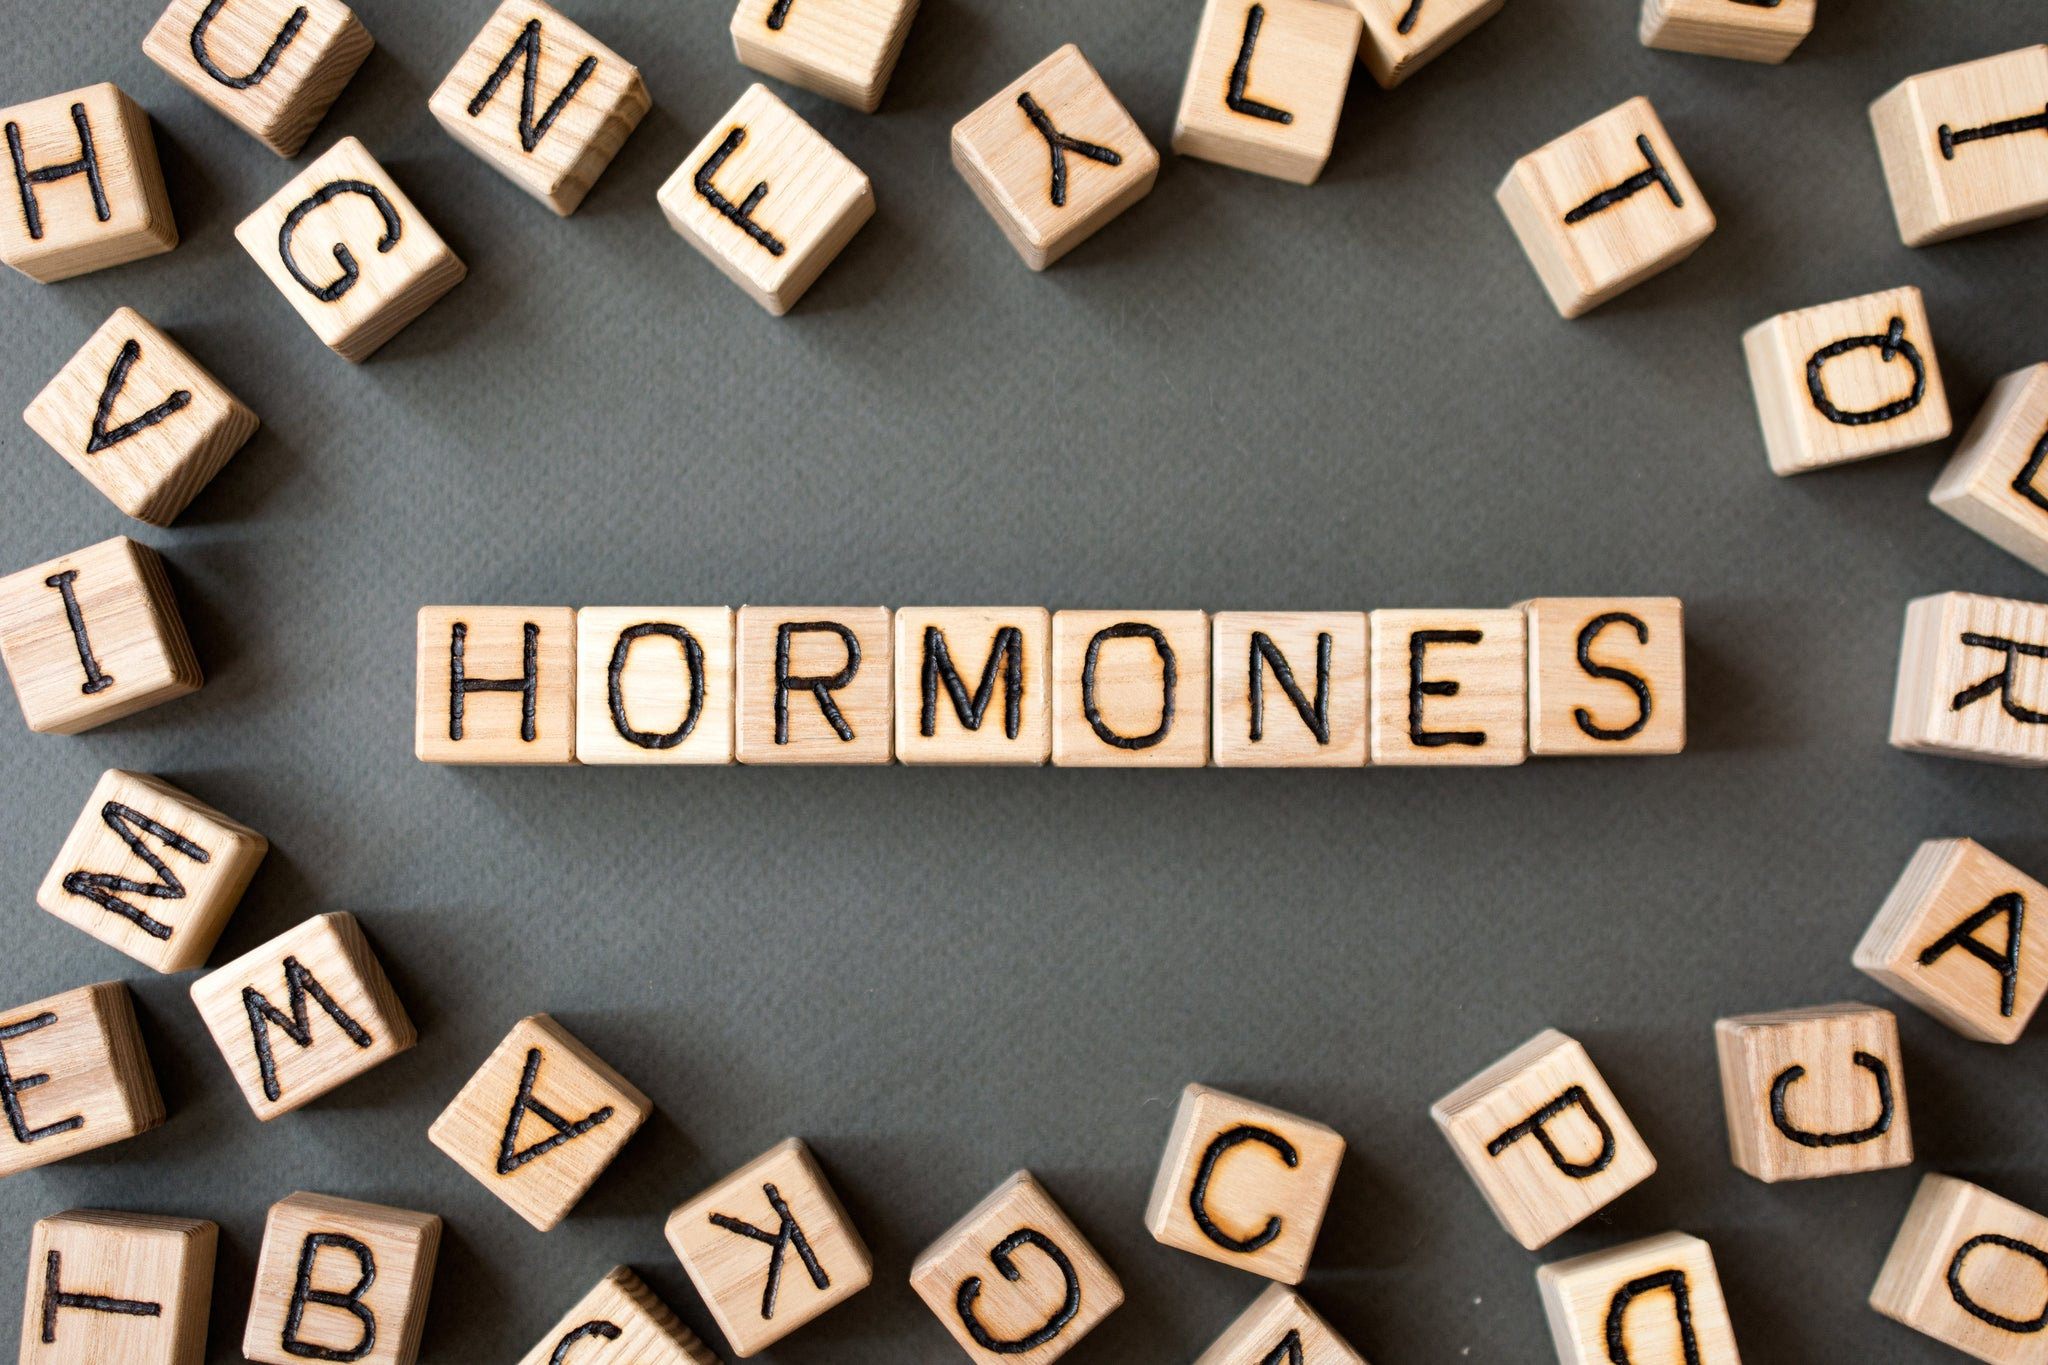 How can vitamins help with hormone imbalance?